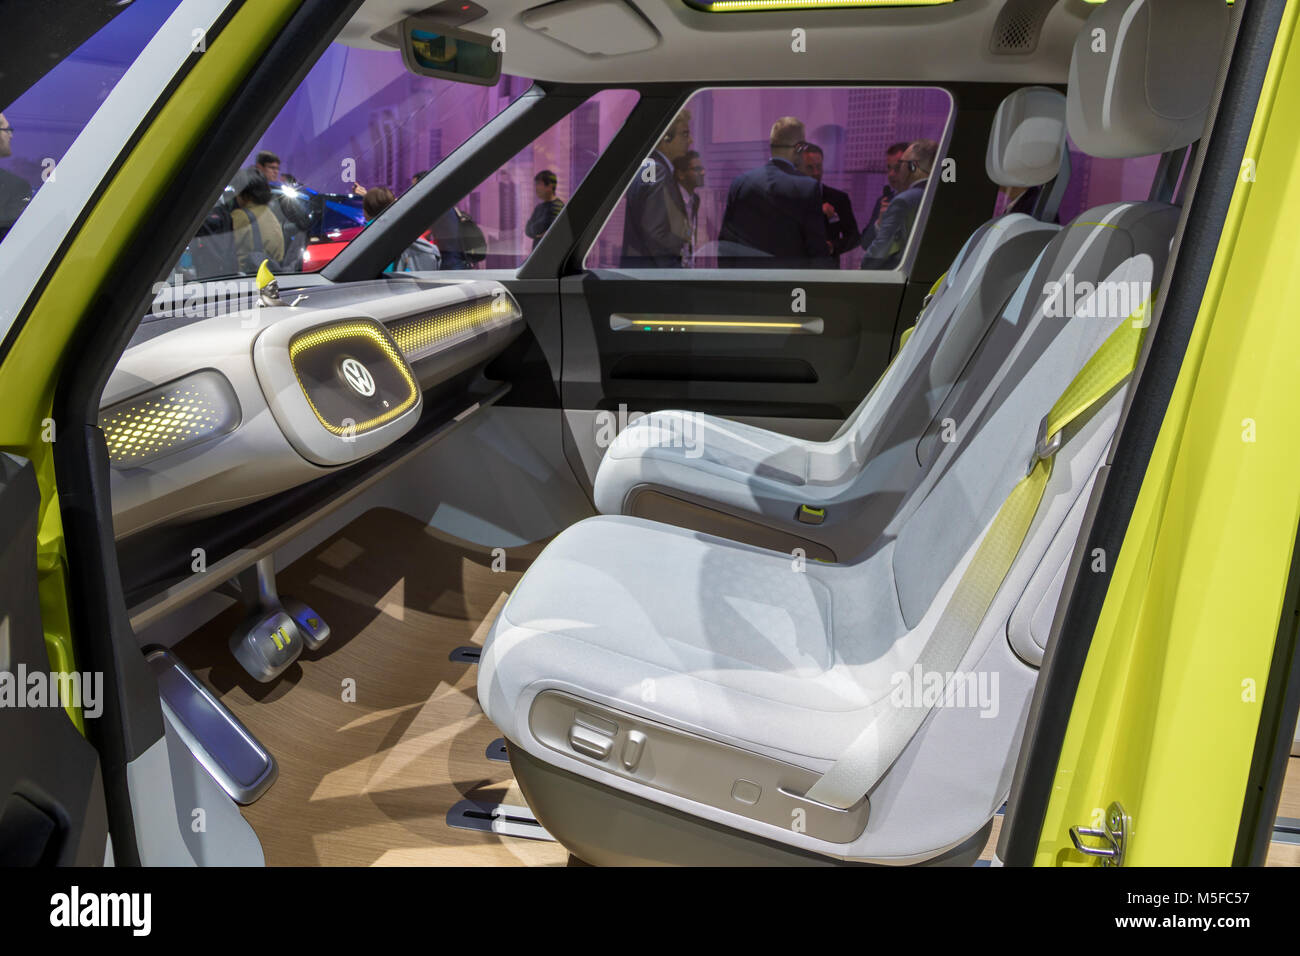 Vw Van Interior Stock Photos Images